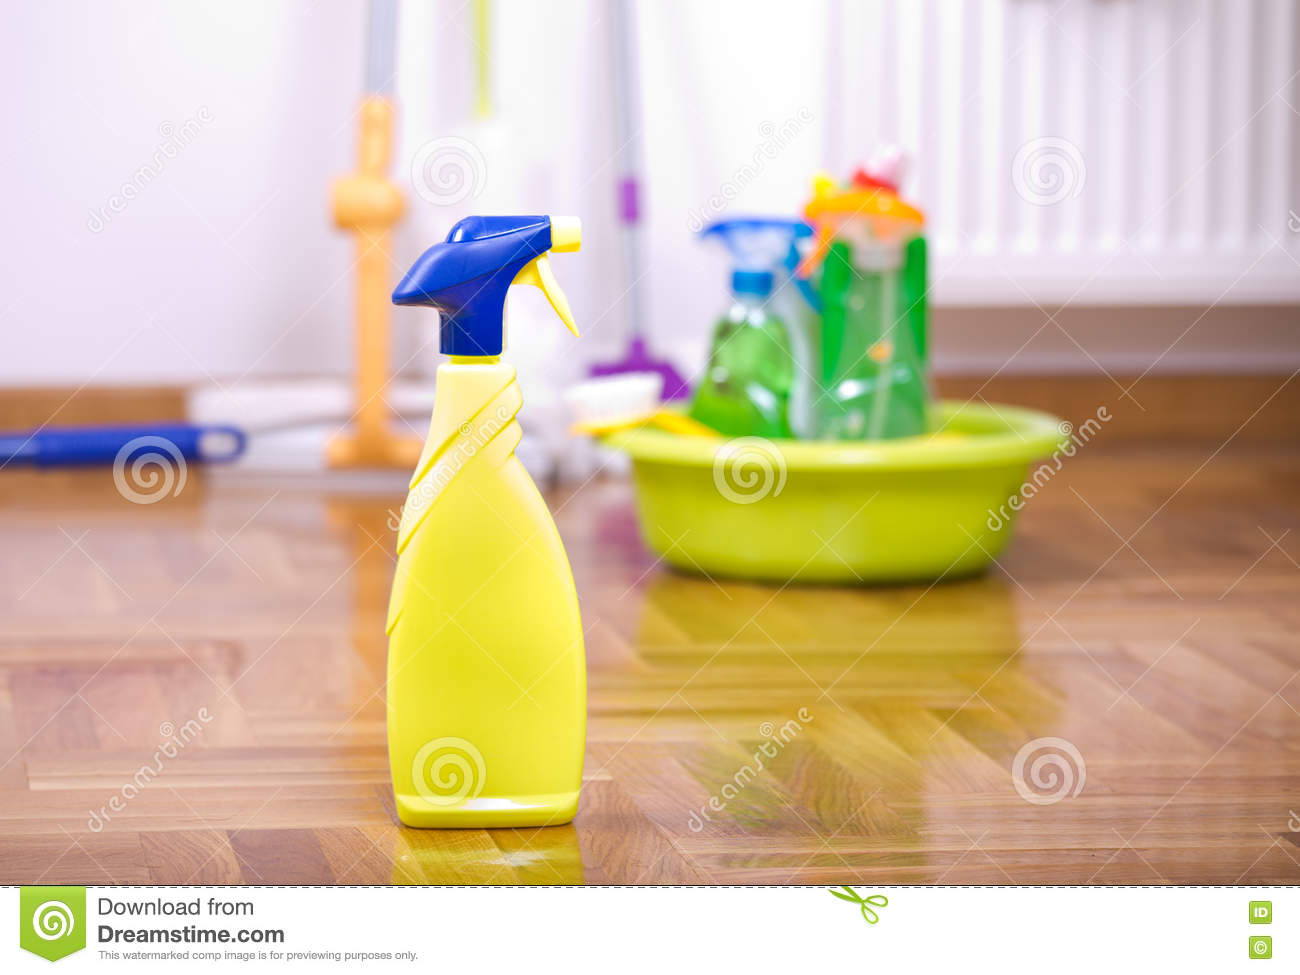 how to clean a spray bottle